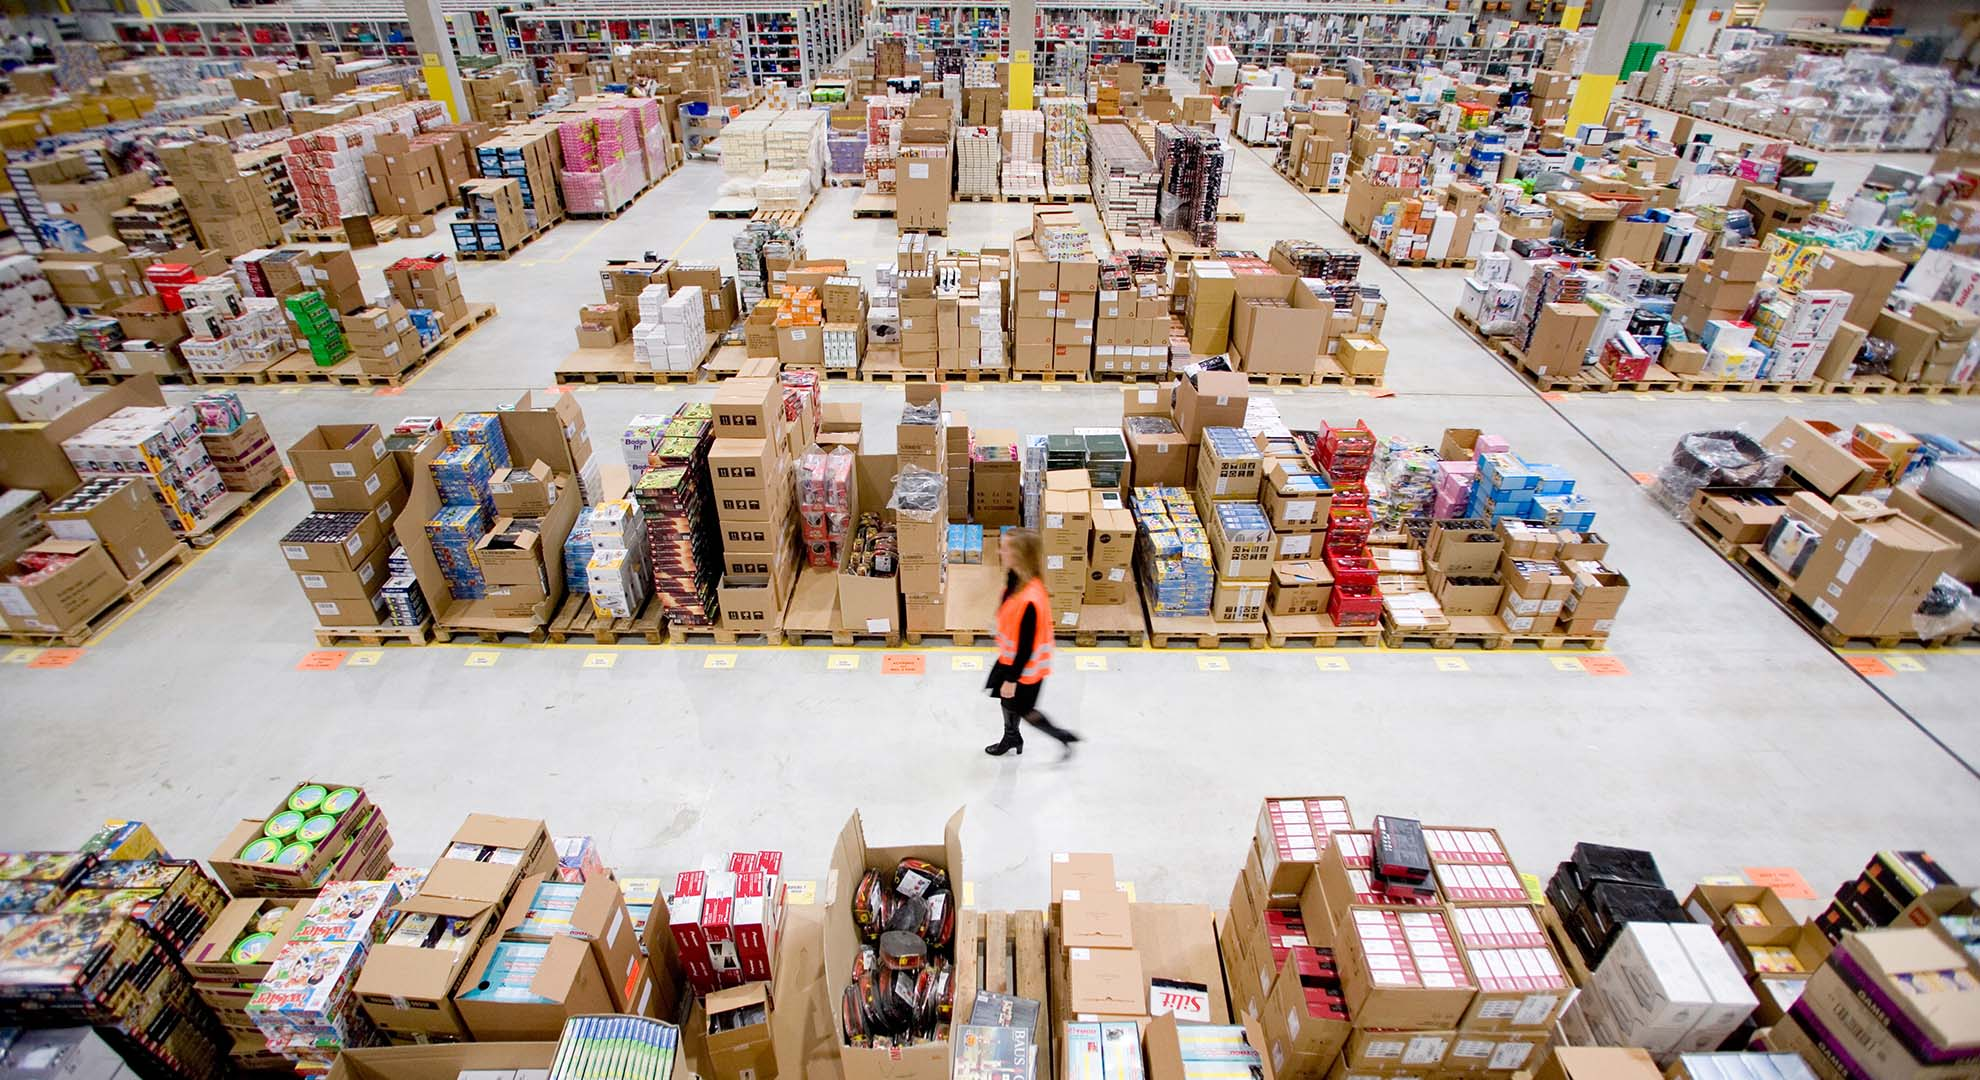 Experiential marketing is becoming important for Amazon.